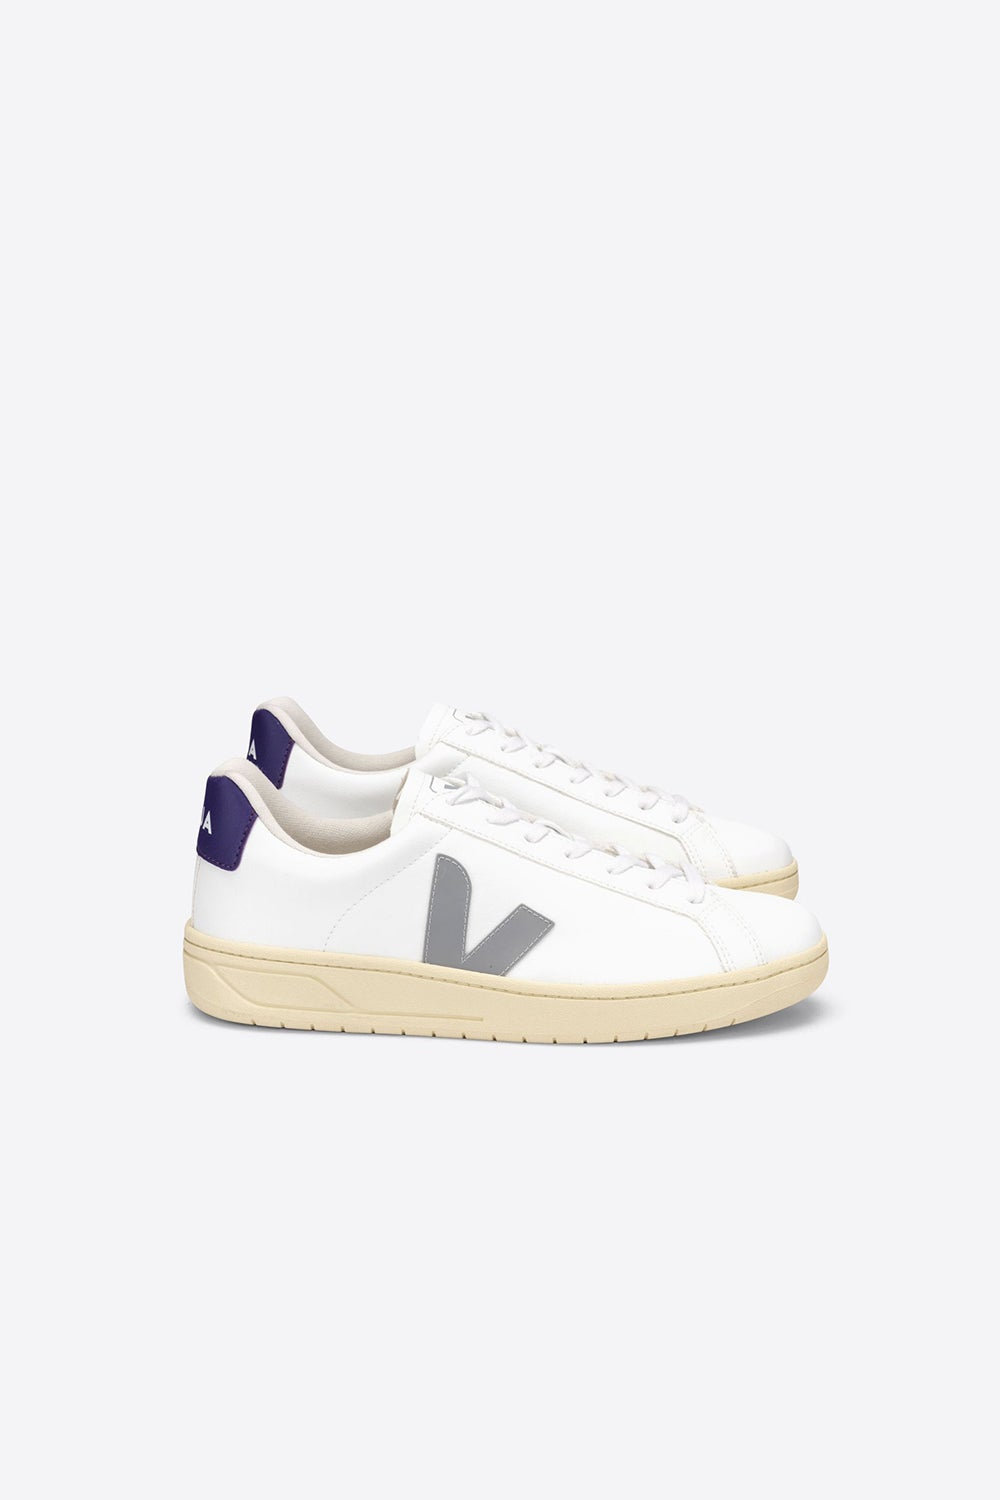 Veja Urca White/Oxford Grey/Purple